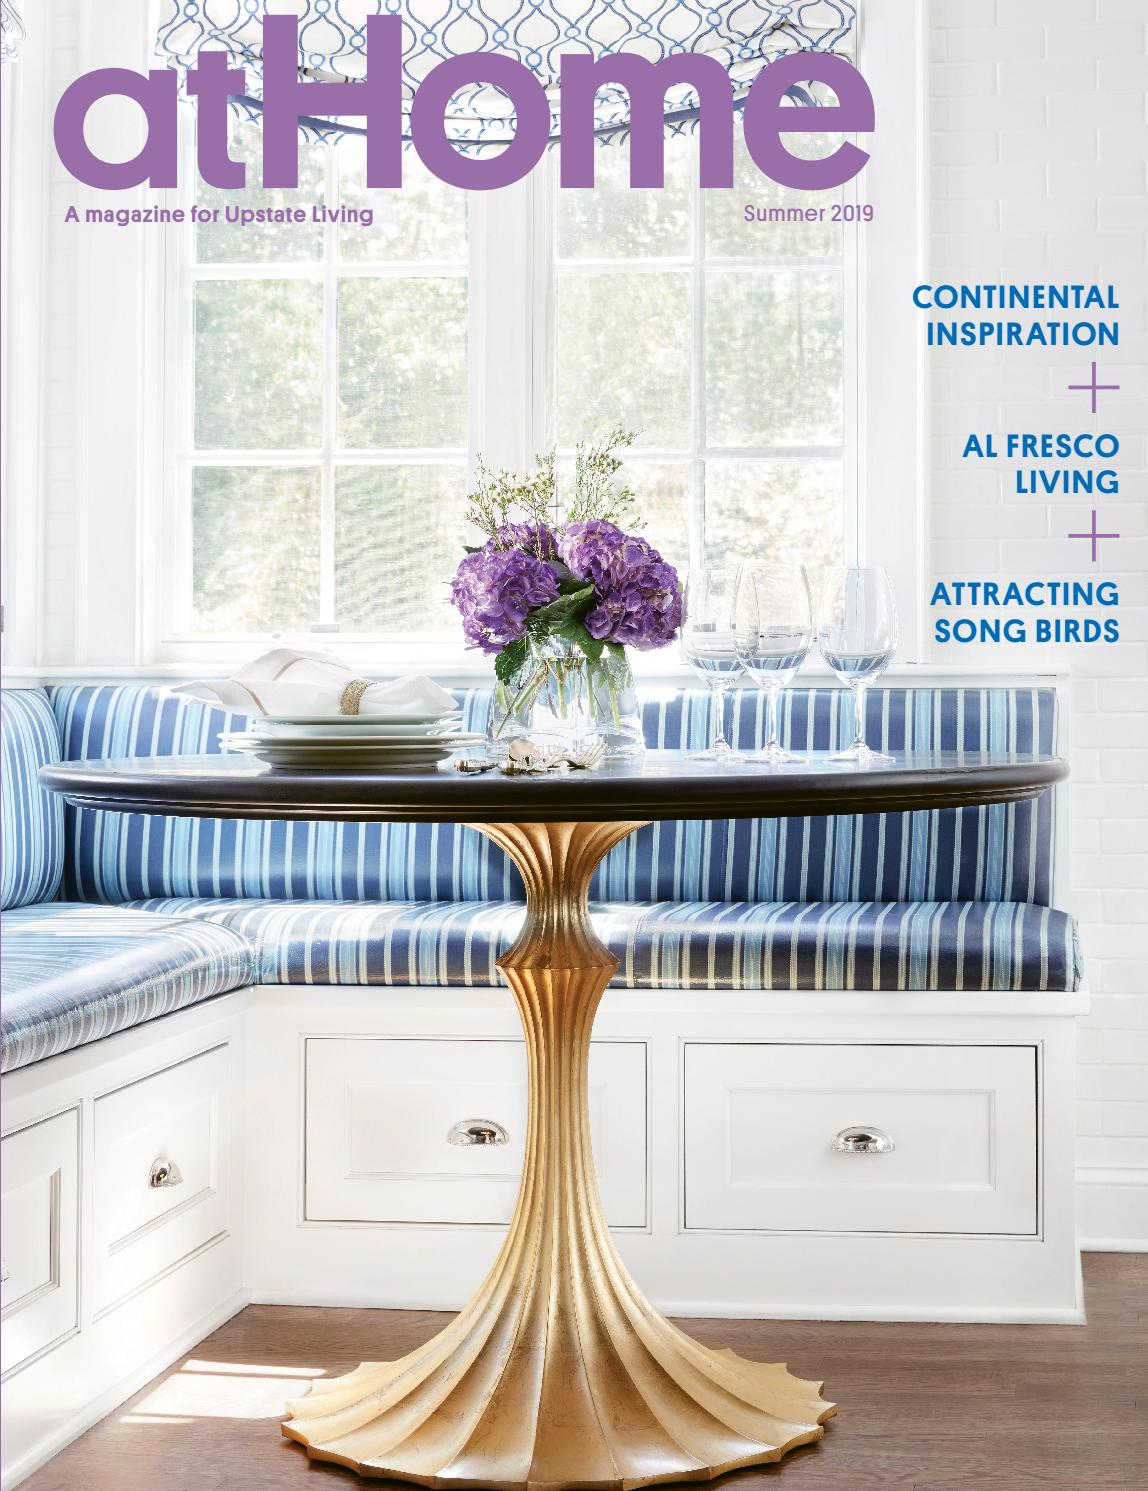 Dressing Ikea Angle Sans Porte at home summer 2019community journals - issuu